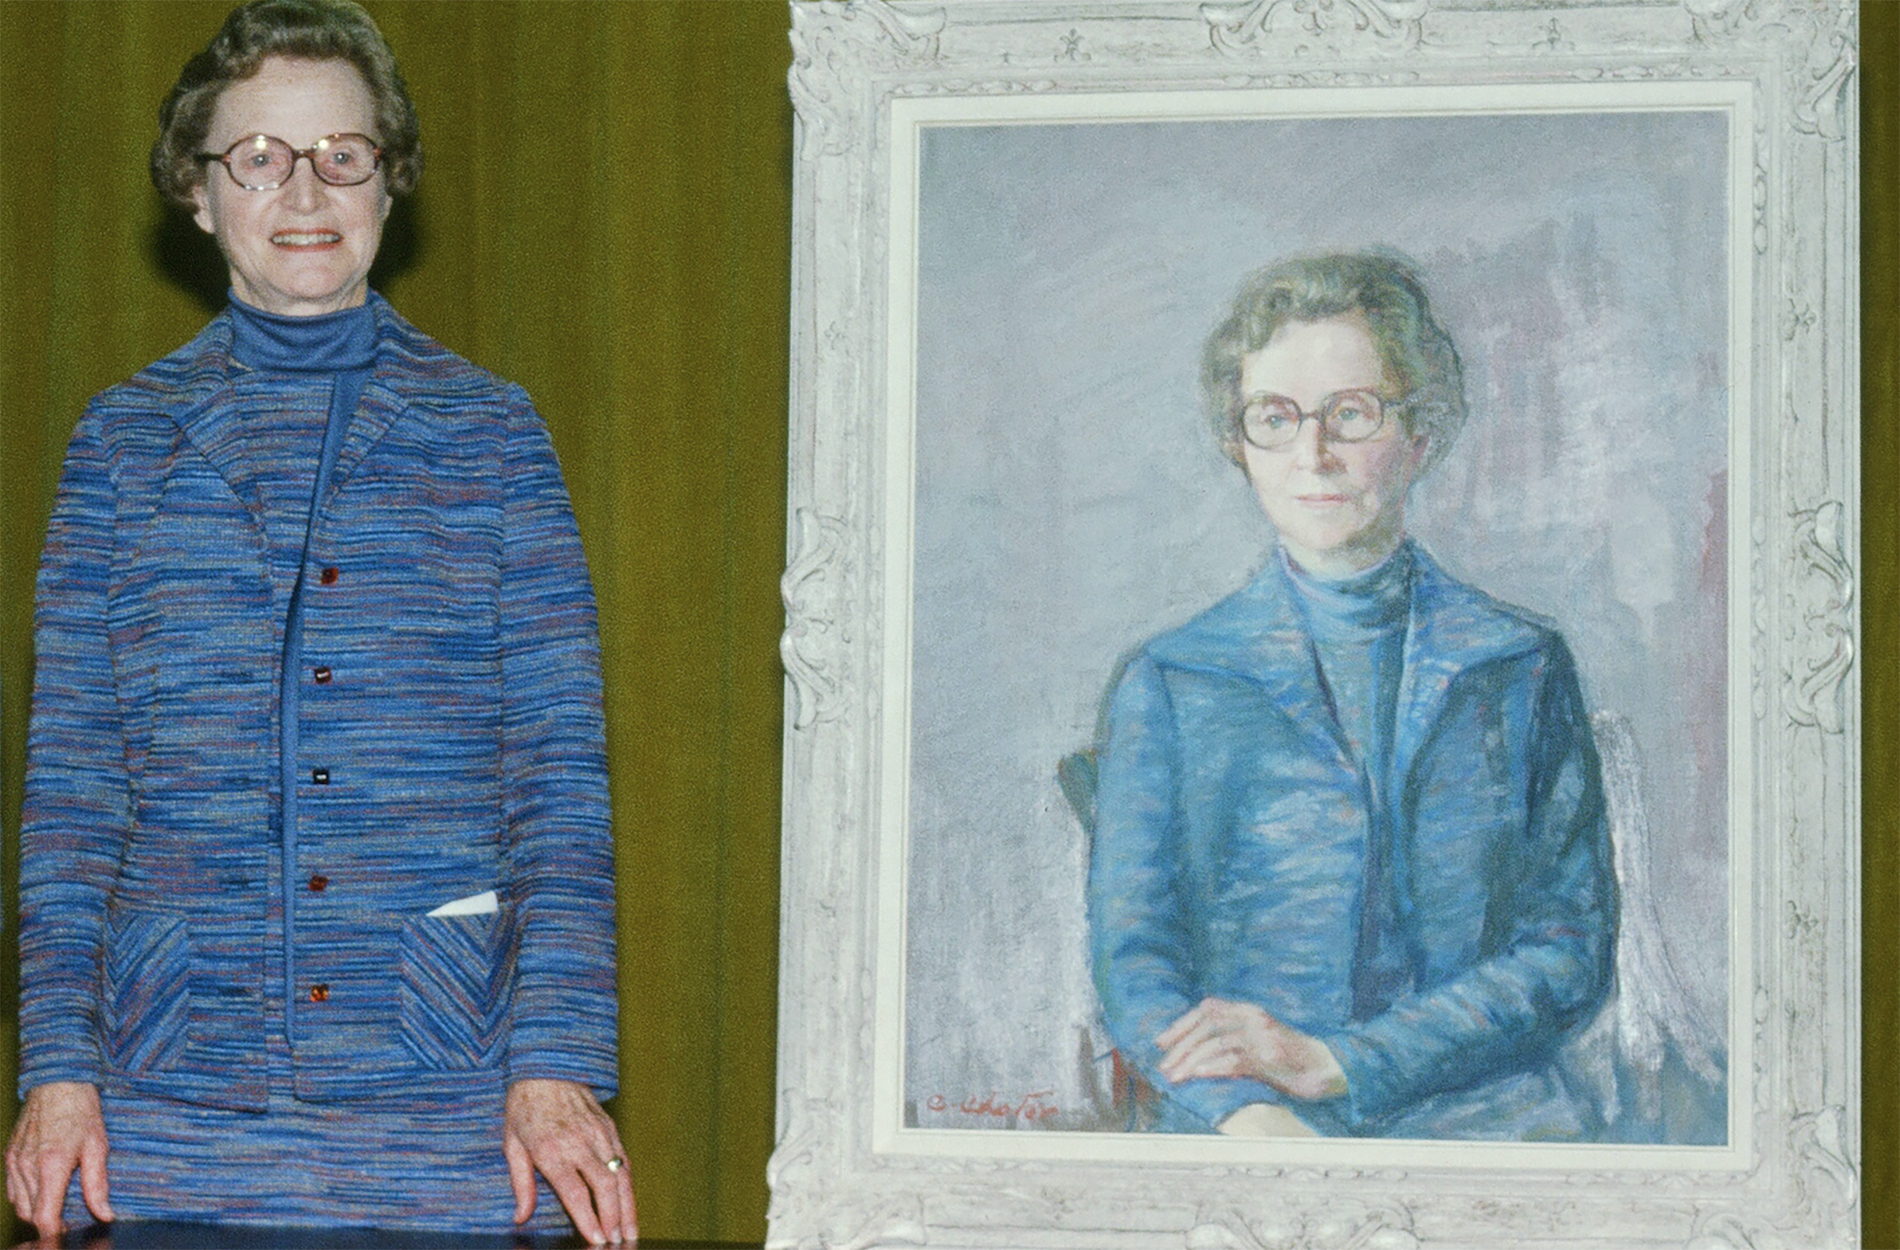 Ms. Medhurst standing next to her portrait